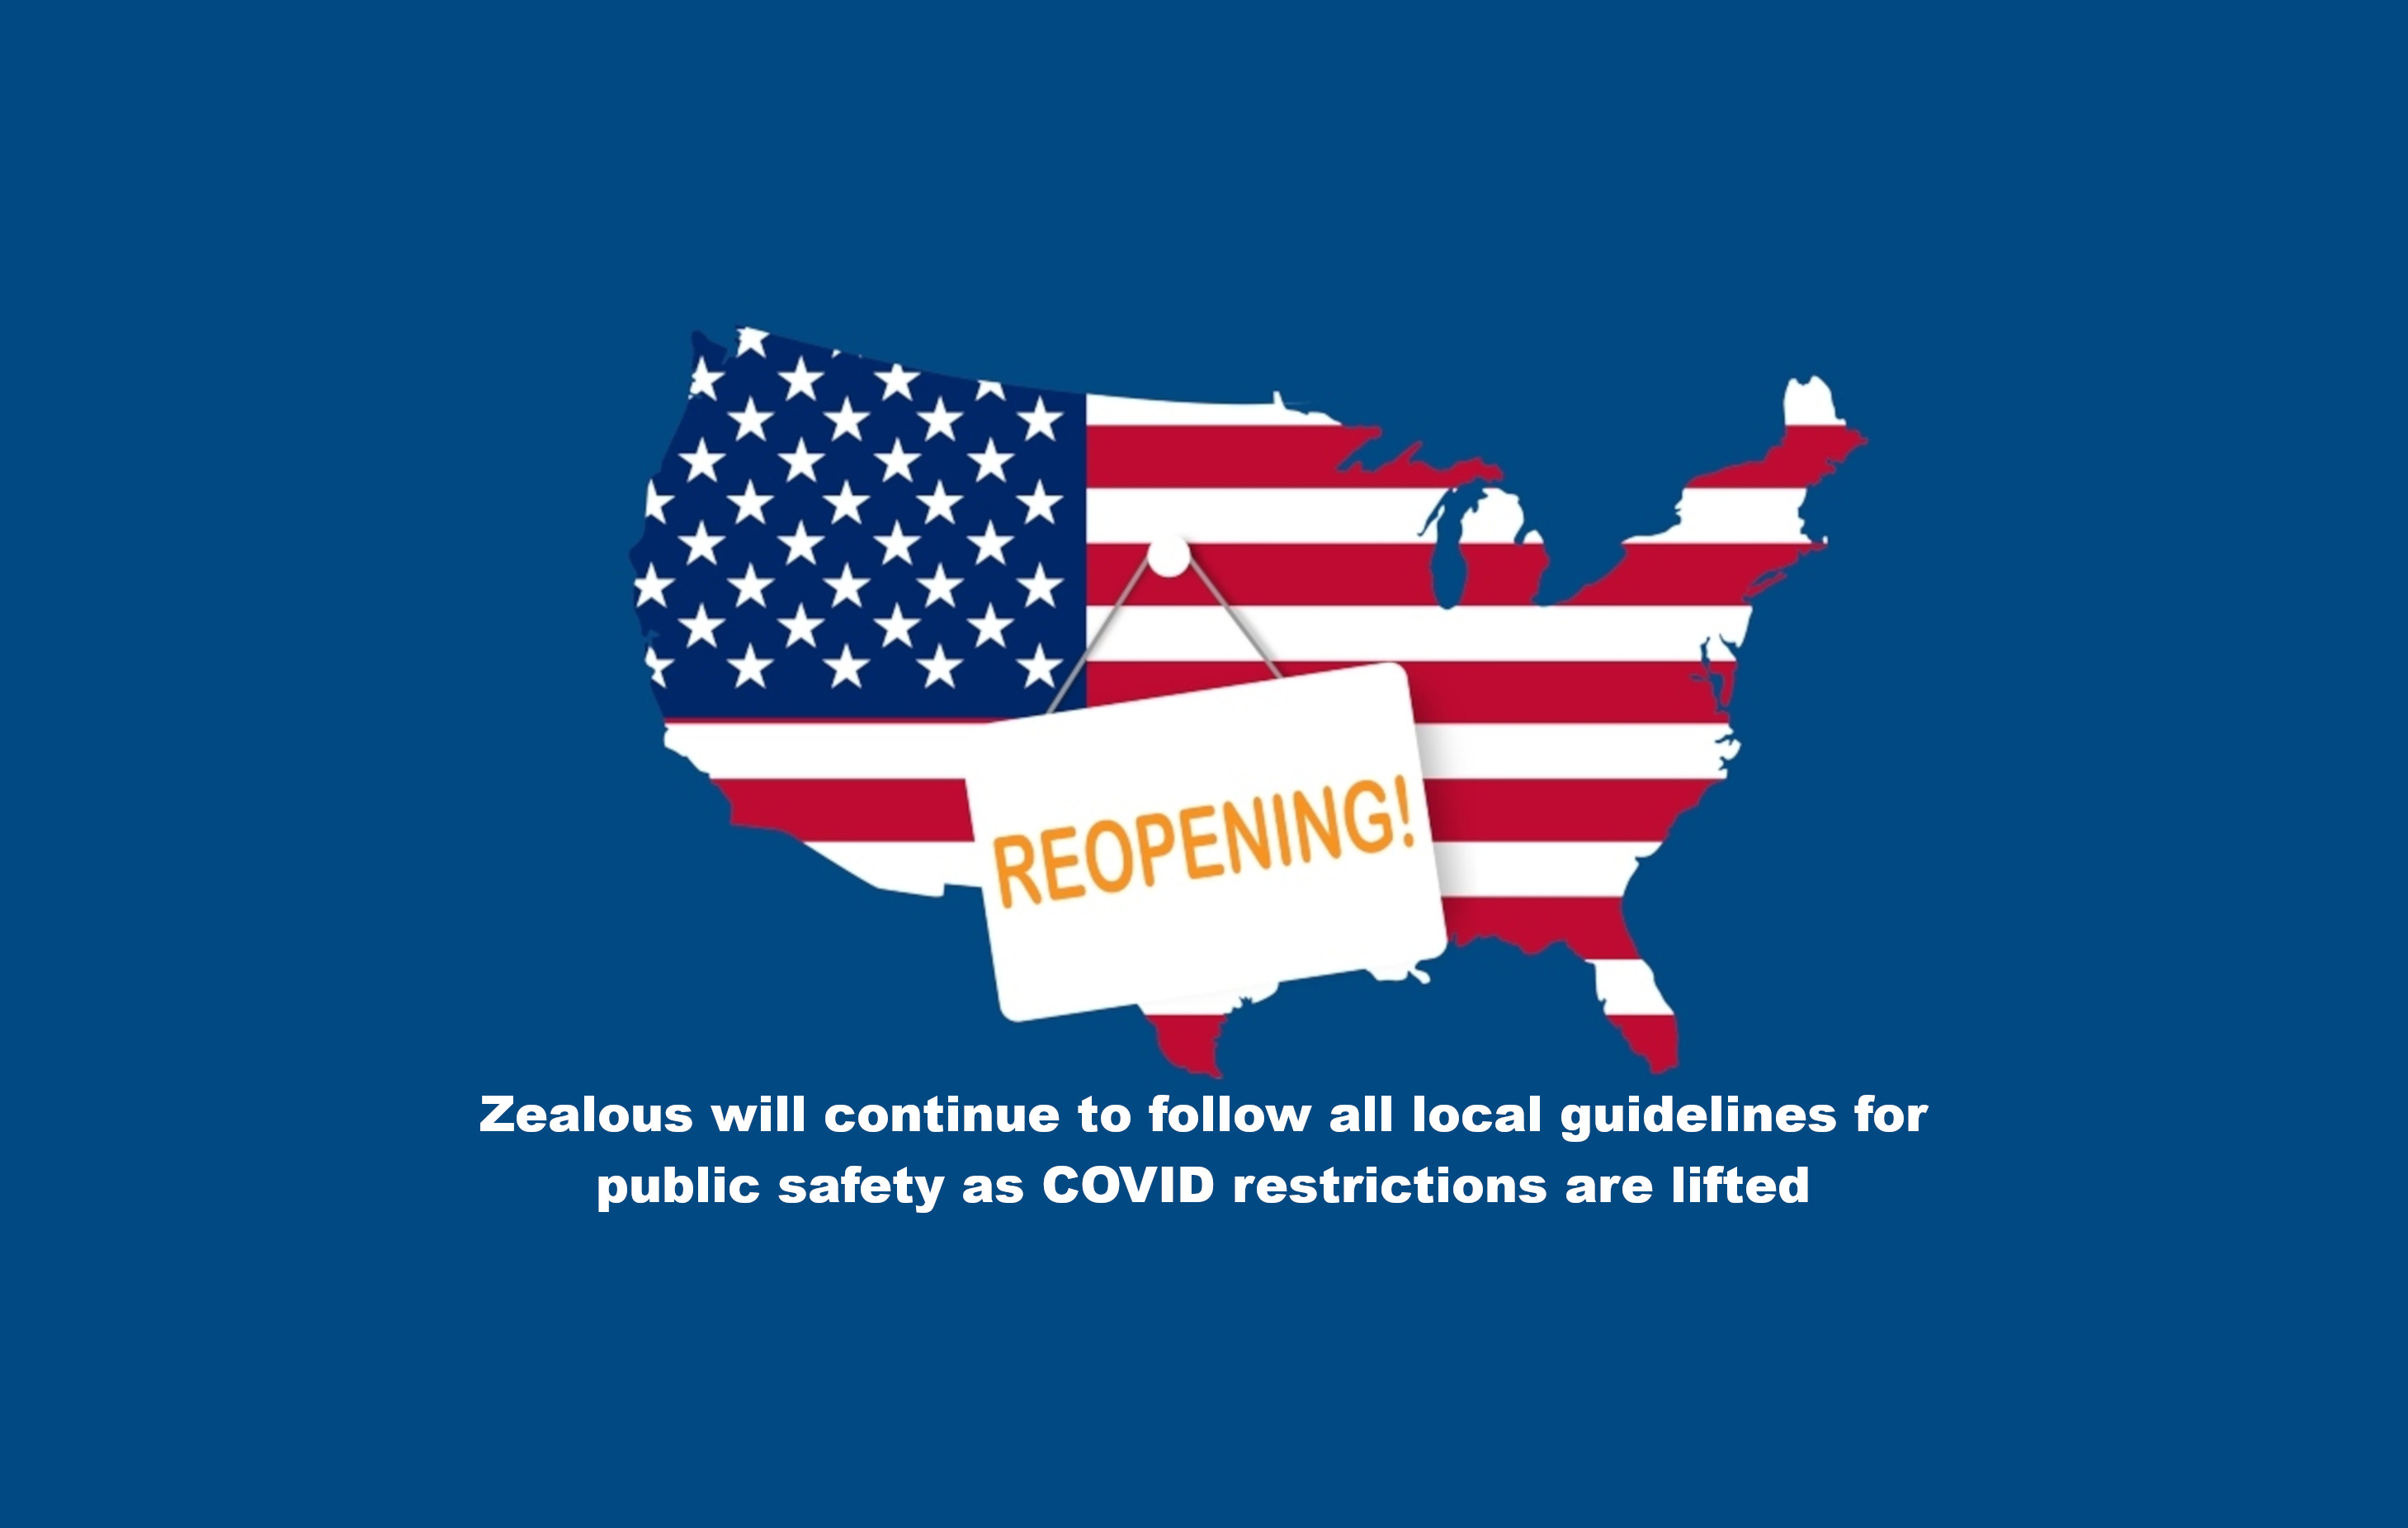 Reopening! - Zealous will continue to follow all local guidelines for public safety as COVID restrictions are lifted.